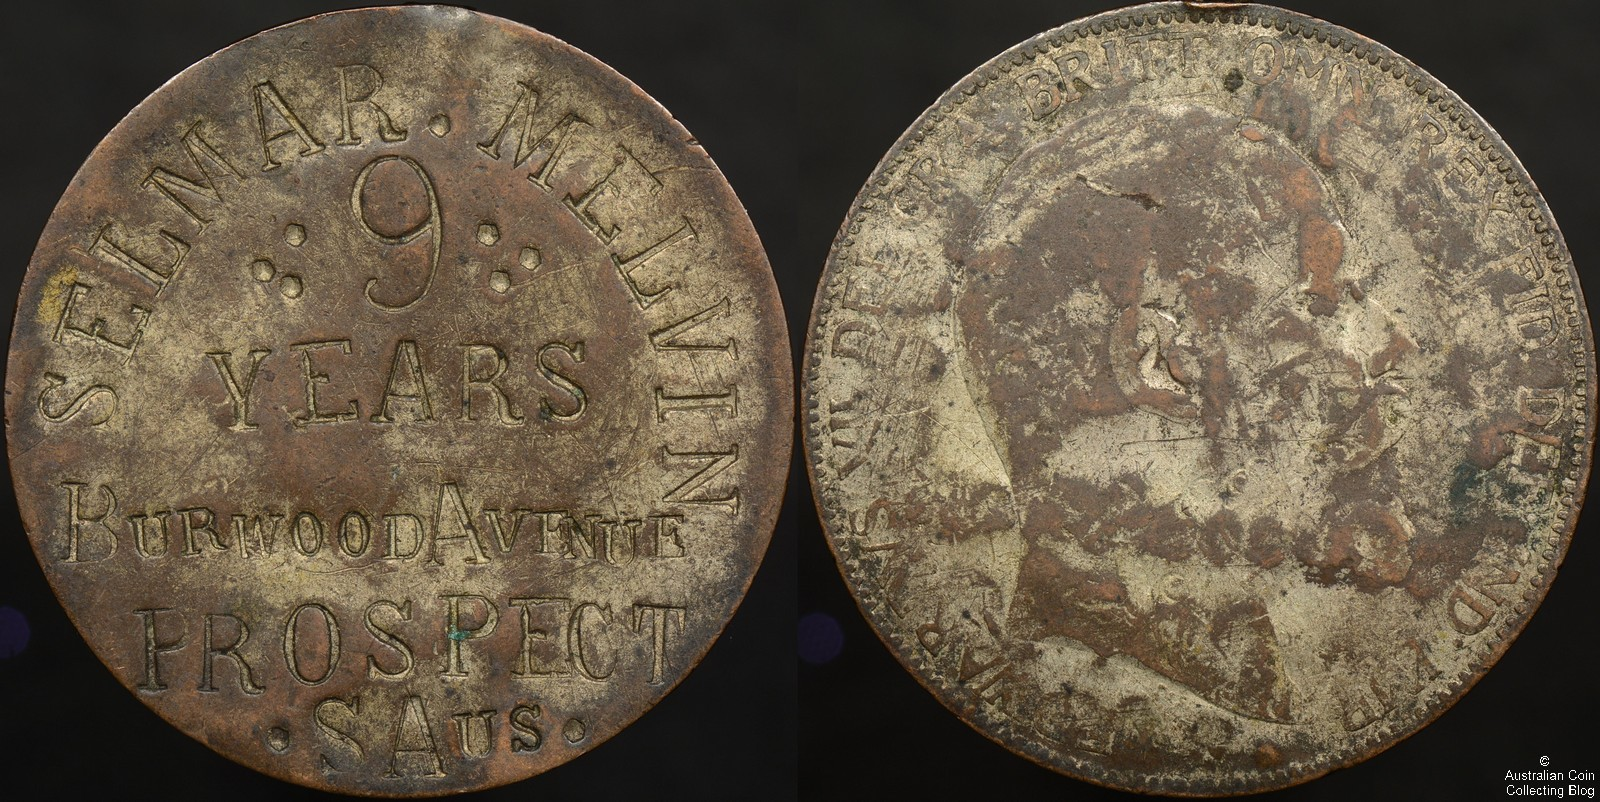 Circa 1918-1919 Children's Token